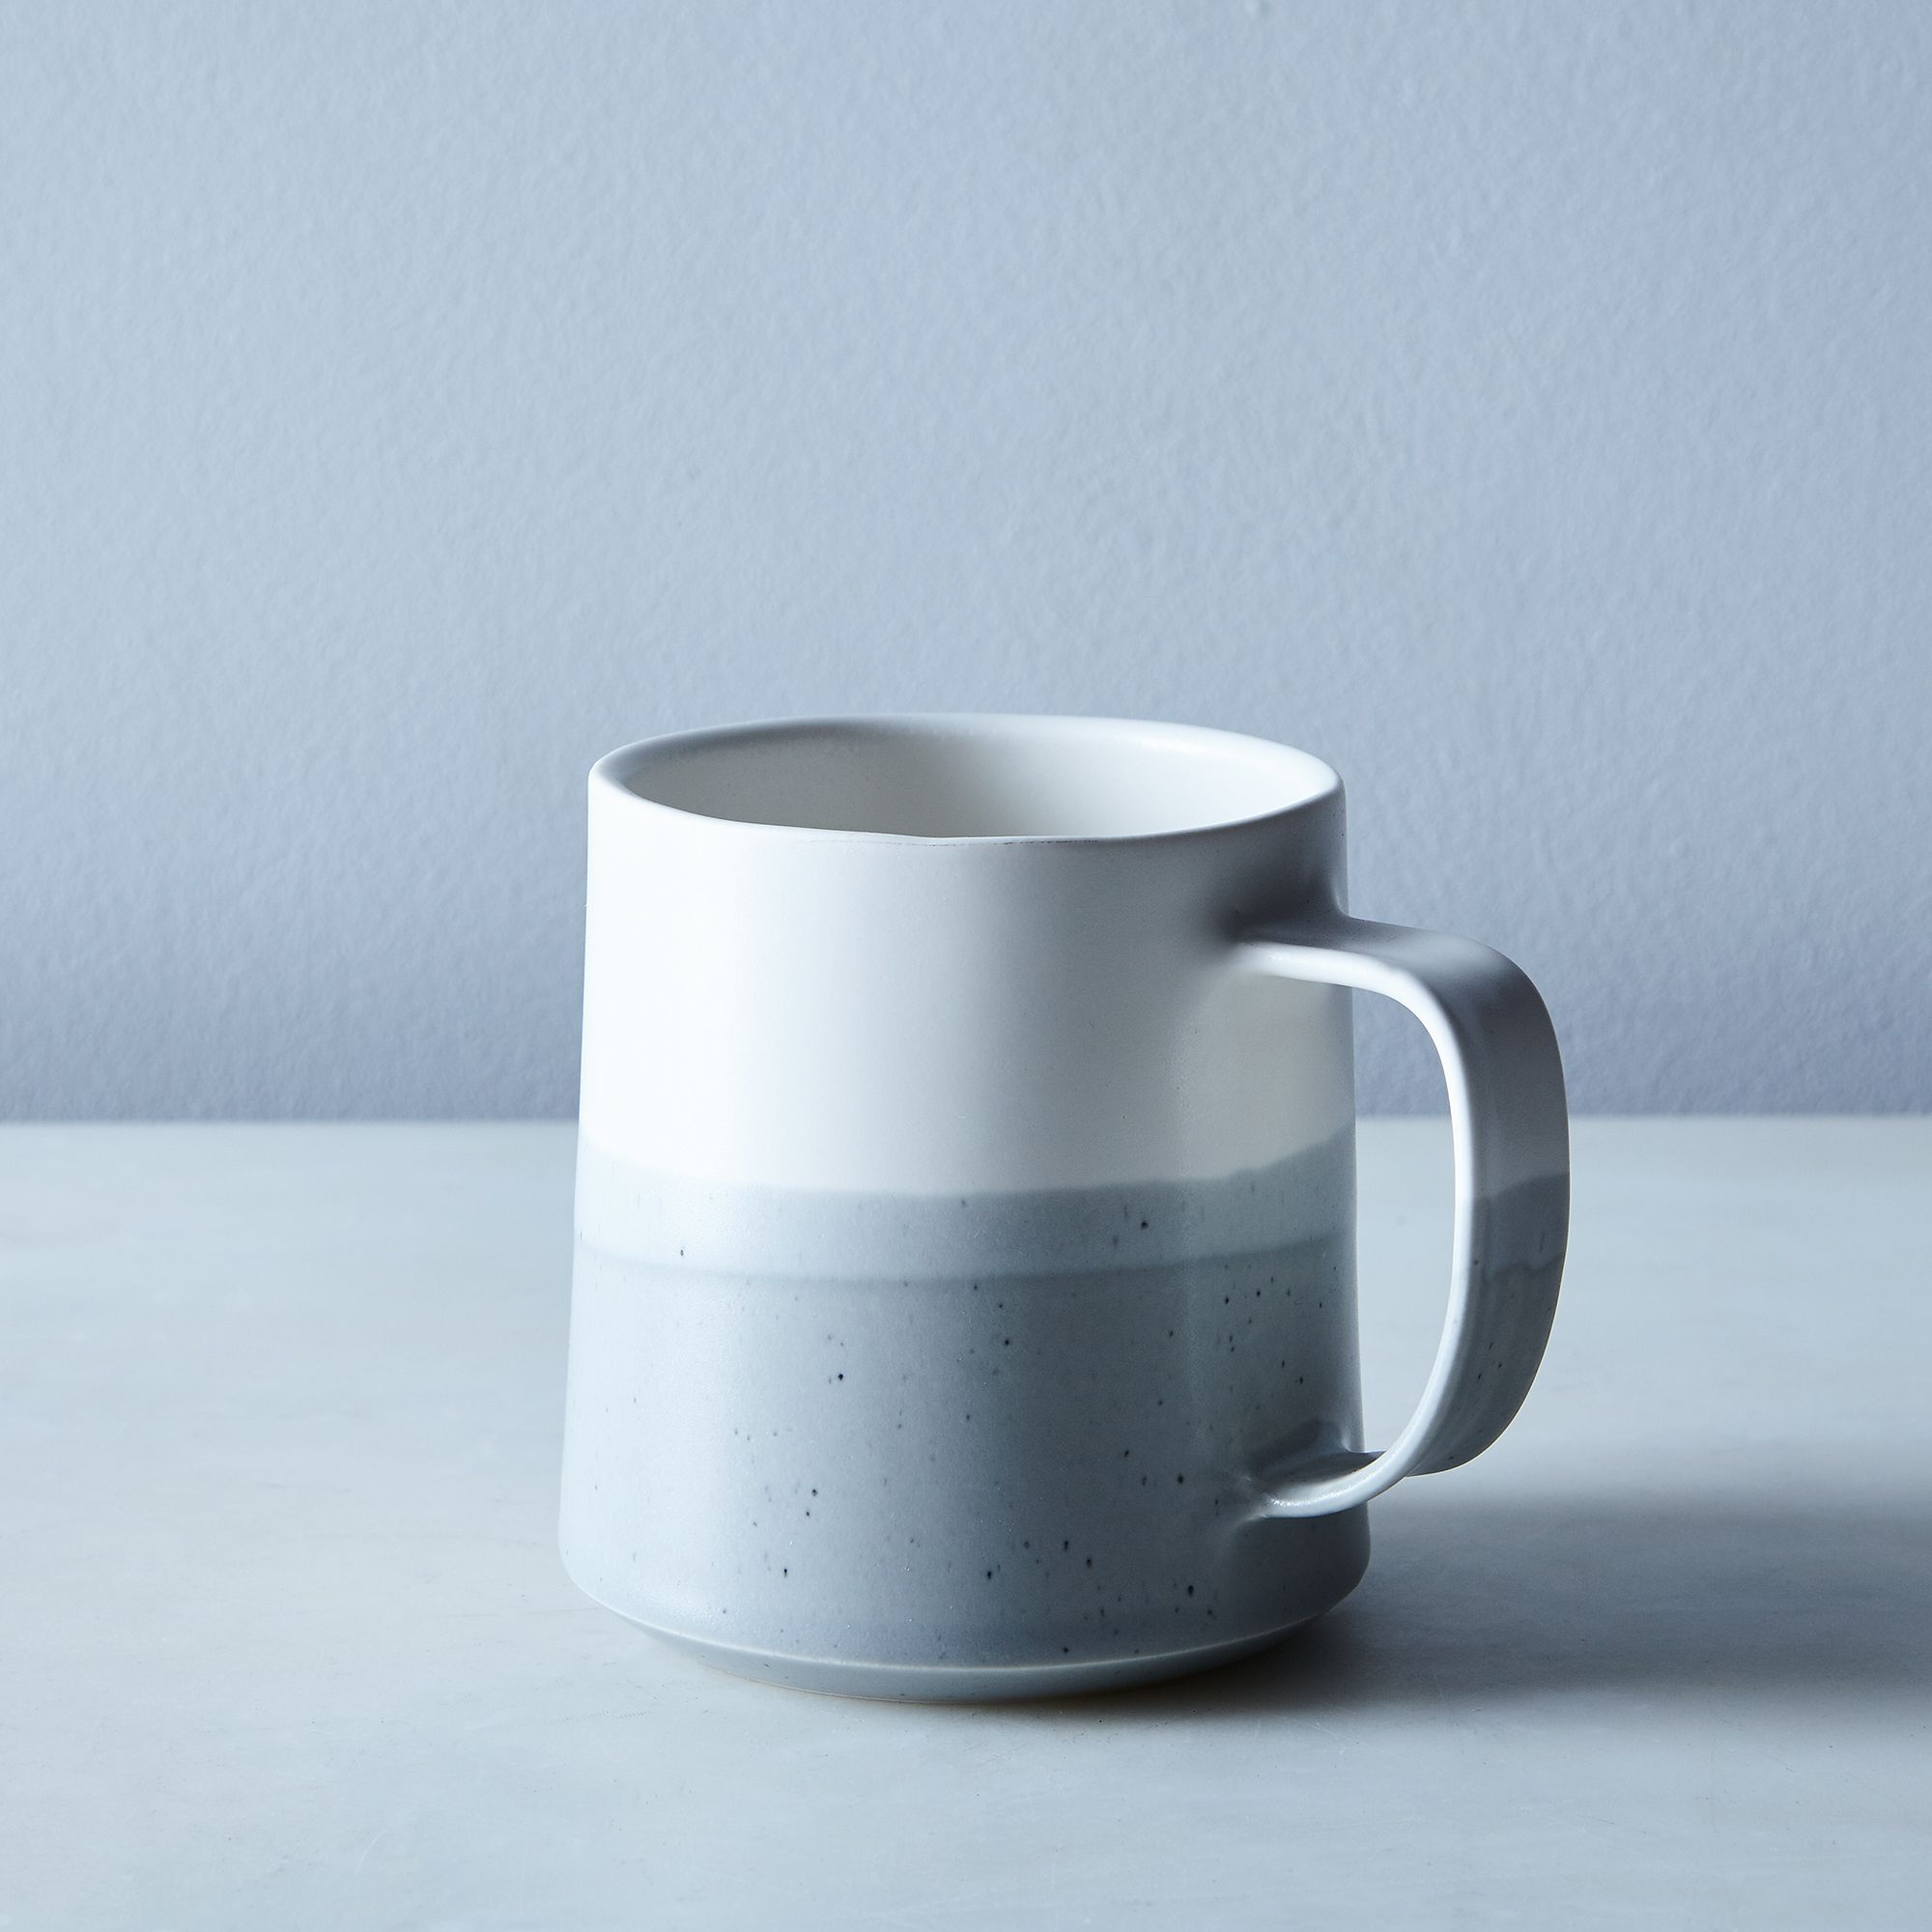 7e18daa9 87ac 4682 b7ed 48c341b779d8  2017 0309 paper and clay danish mug gradient grey detail silo rocky luten 015